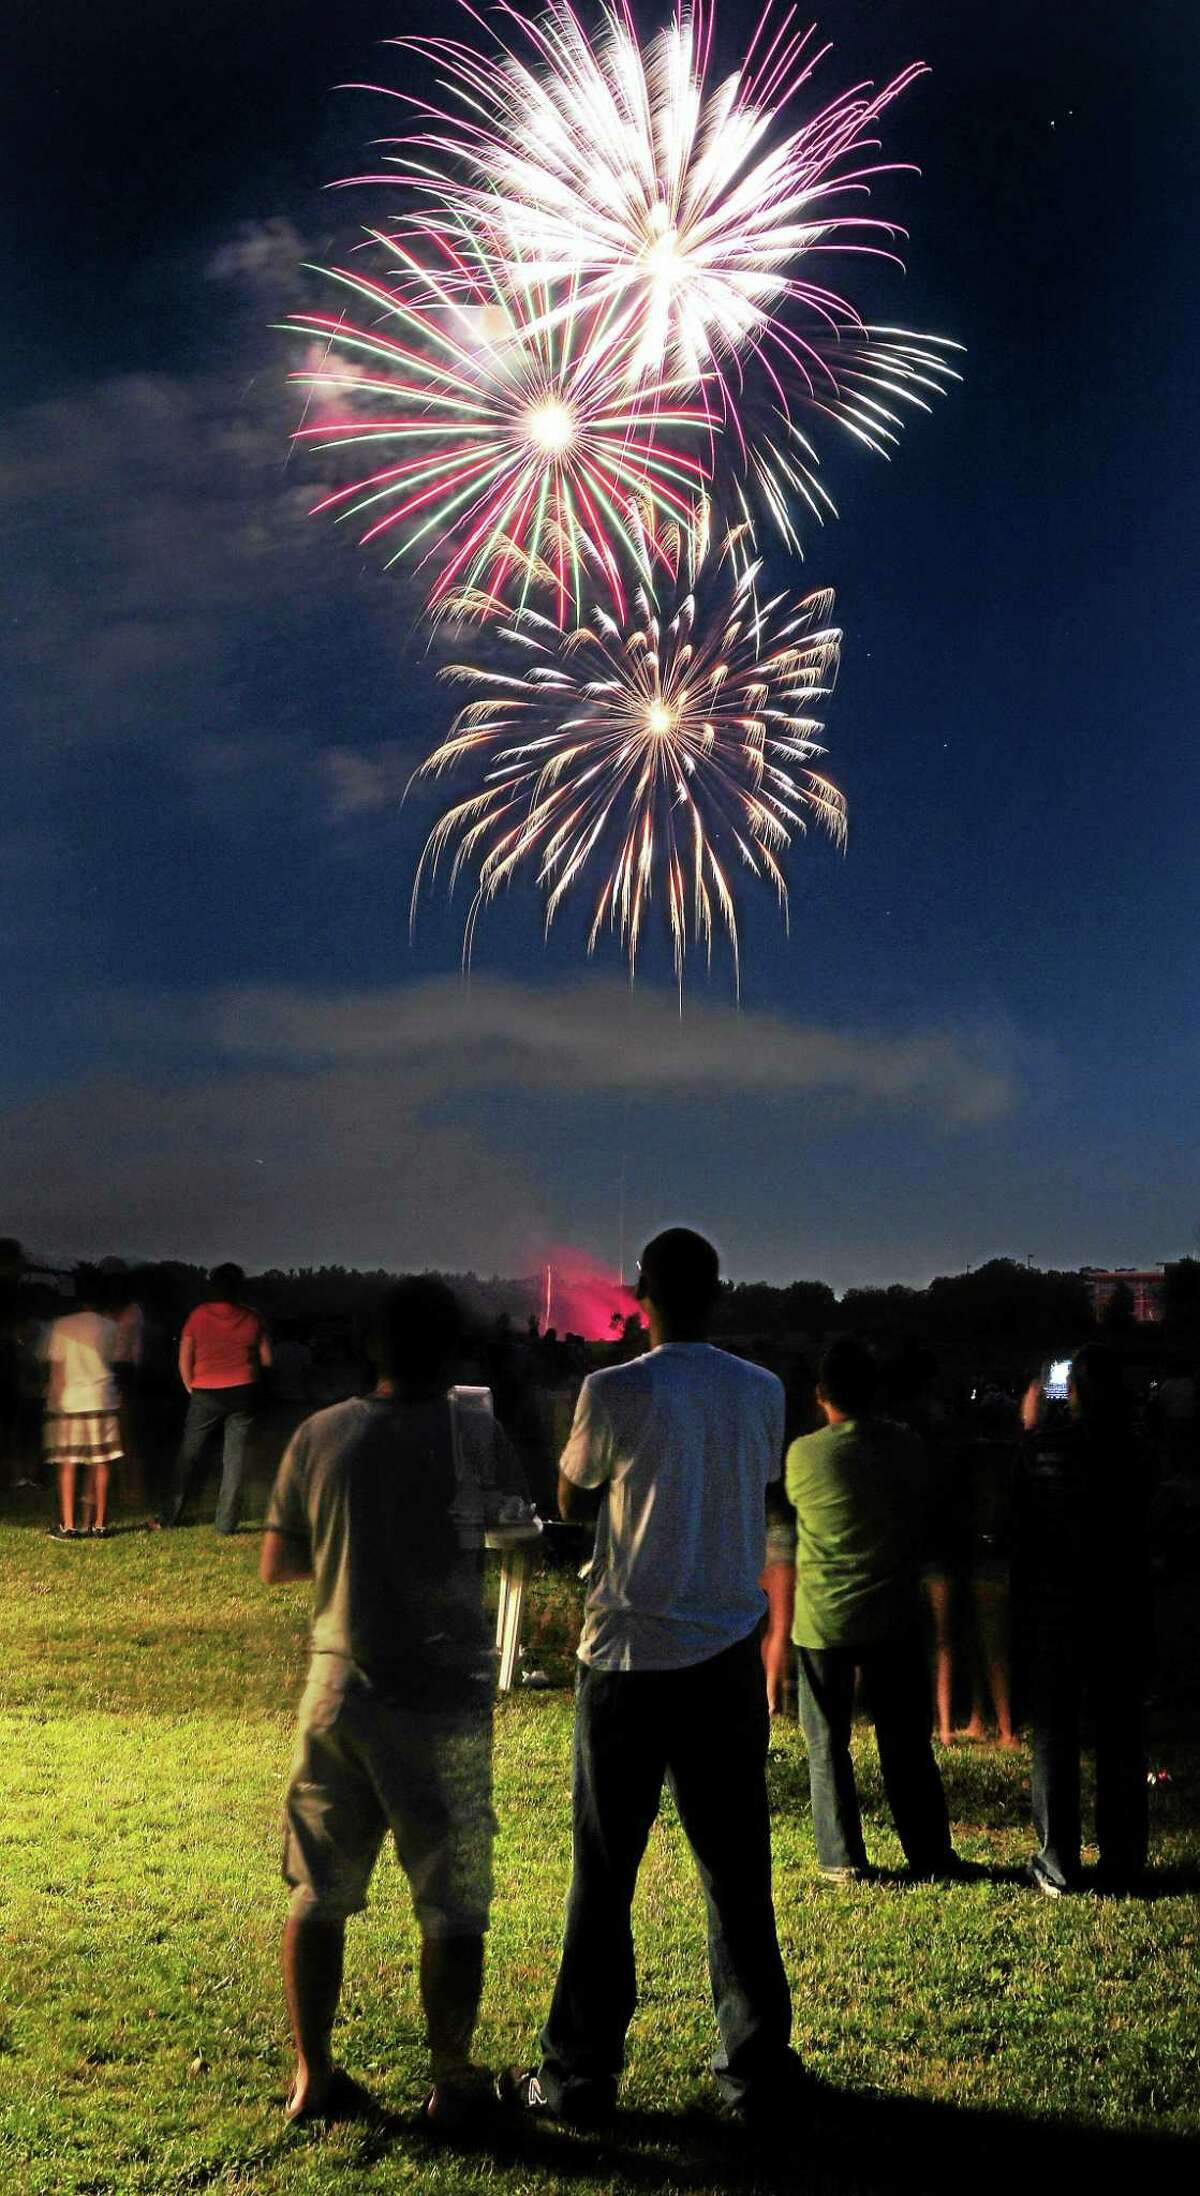 In this file photo from 2011, people watch the fireworks show at Town Center Park at Meadowbrook in Hamden.